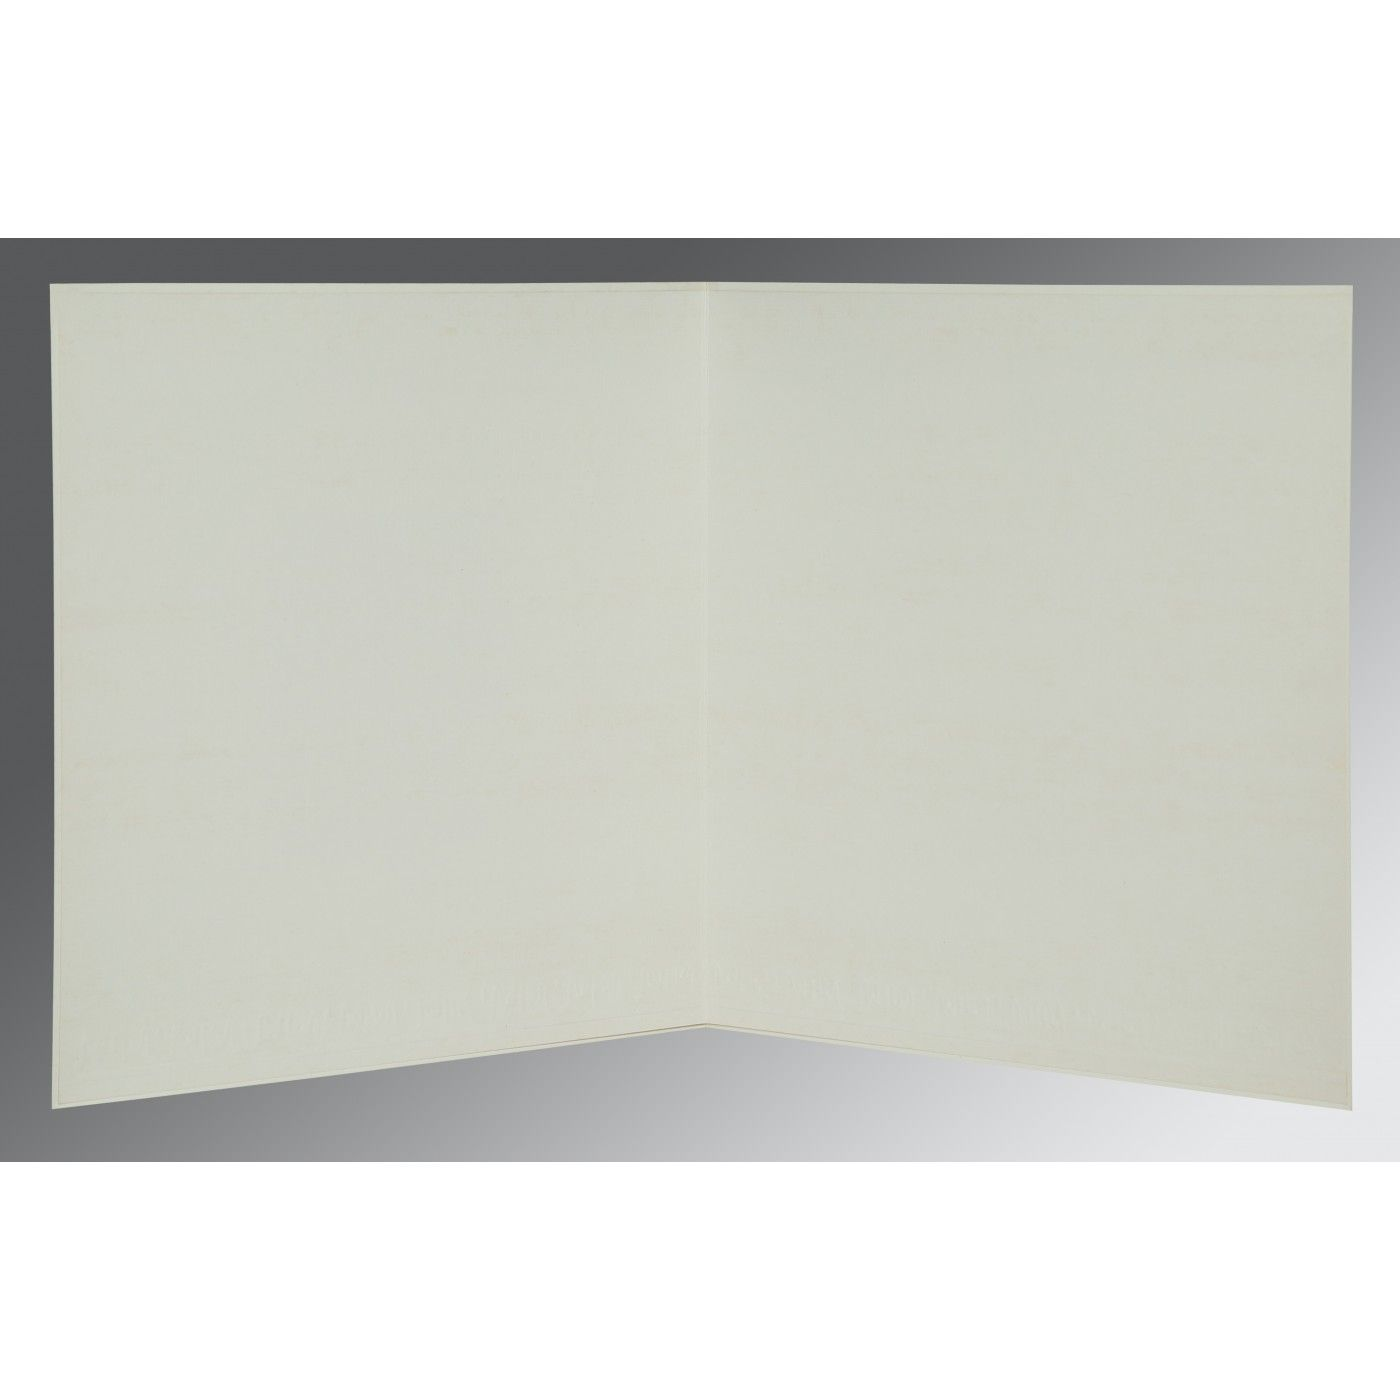 OFF-WHITE MATTE EMBOSSED WEDDING CARD : CW-1153 - IndianWeddingCards